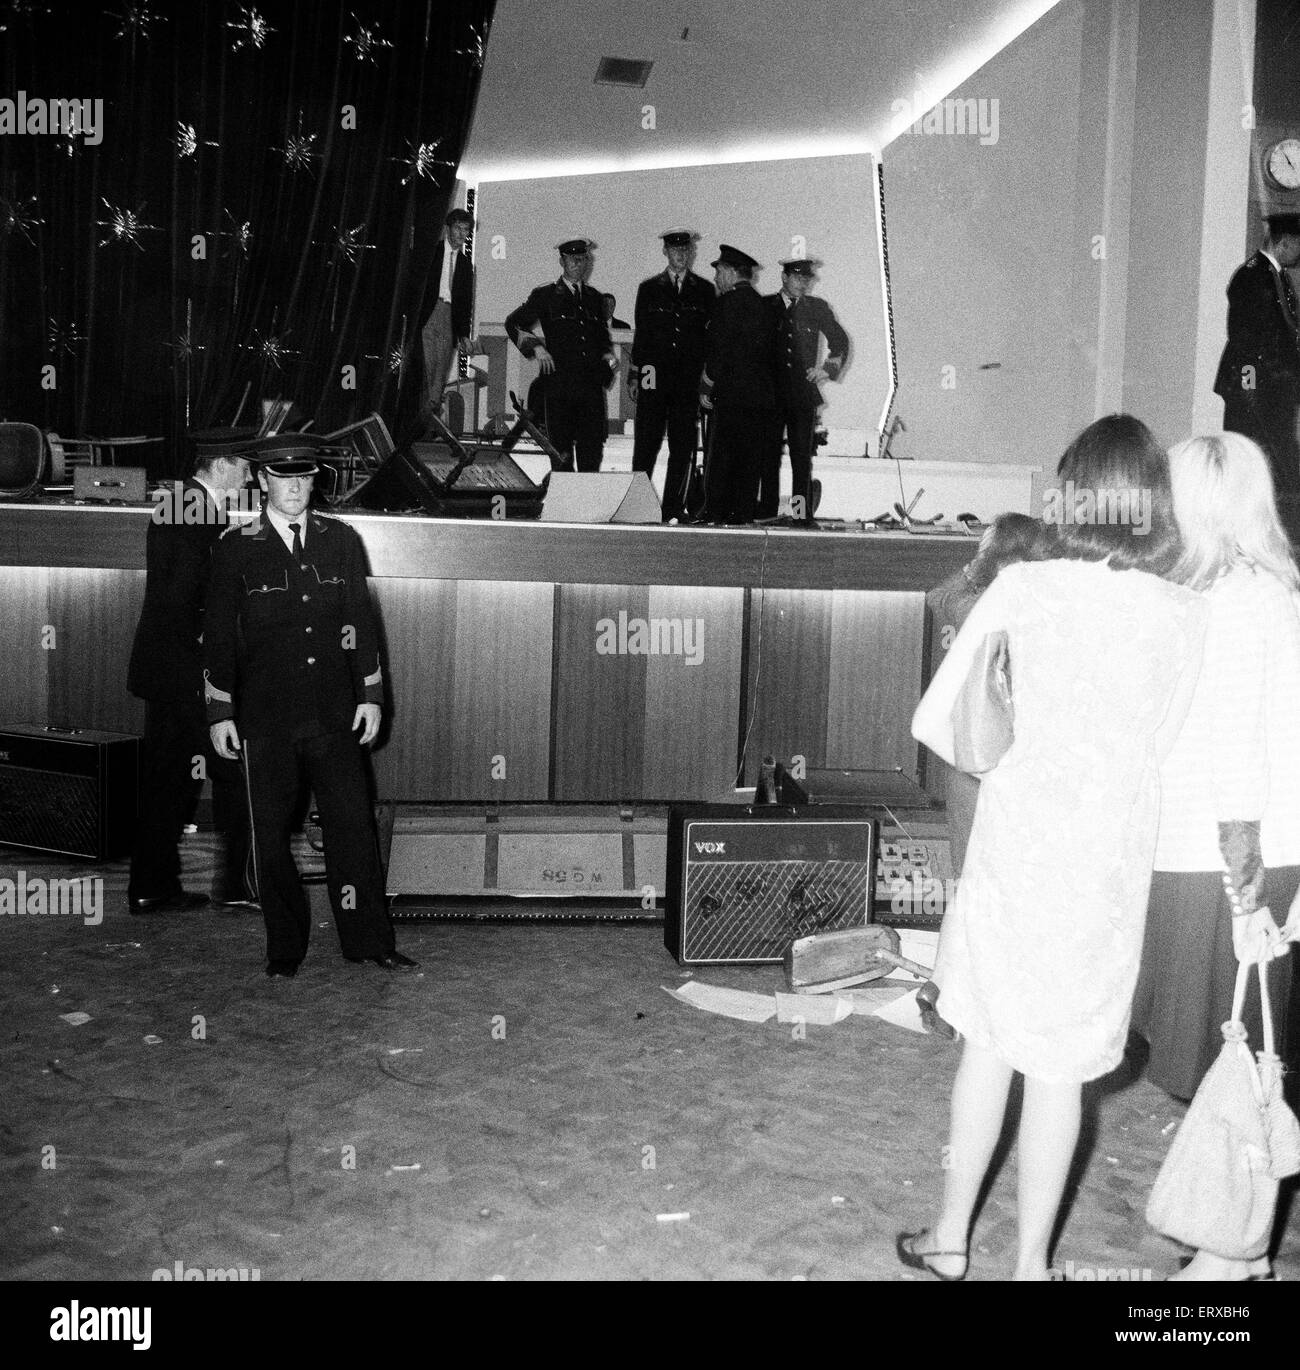 scenes at the winter gardens in blackpool after riots broke out